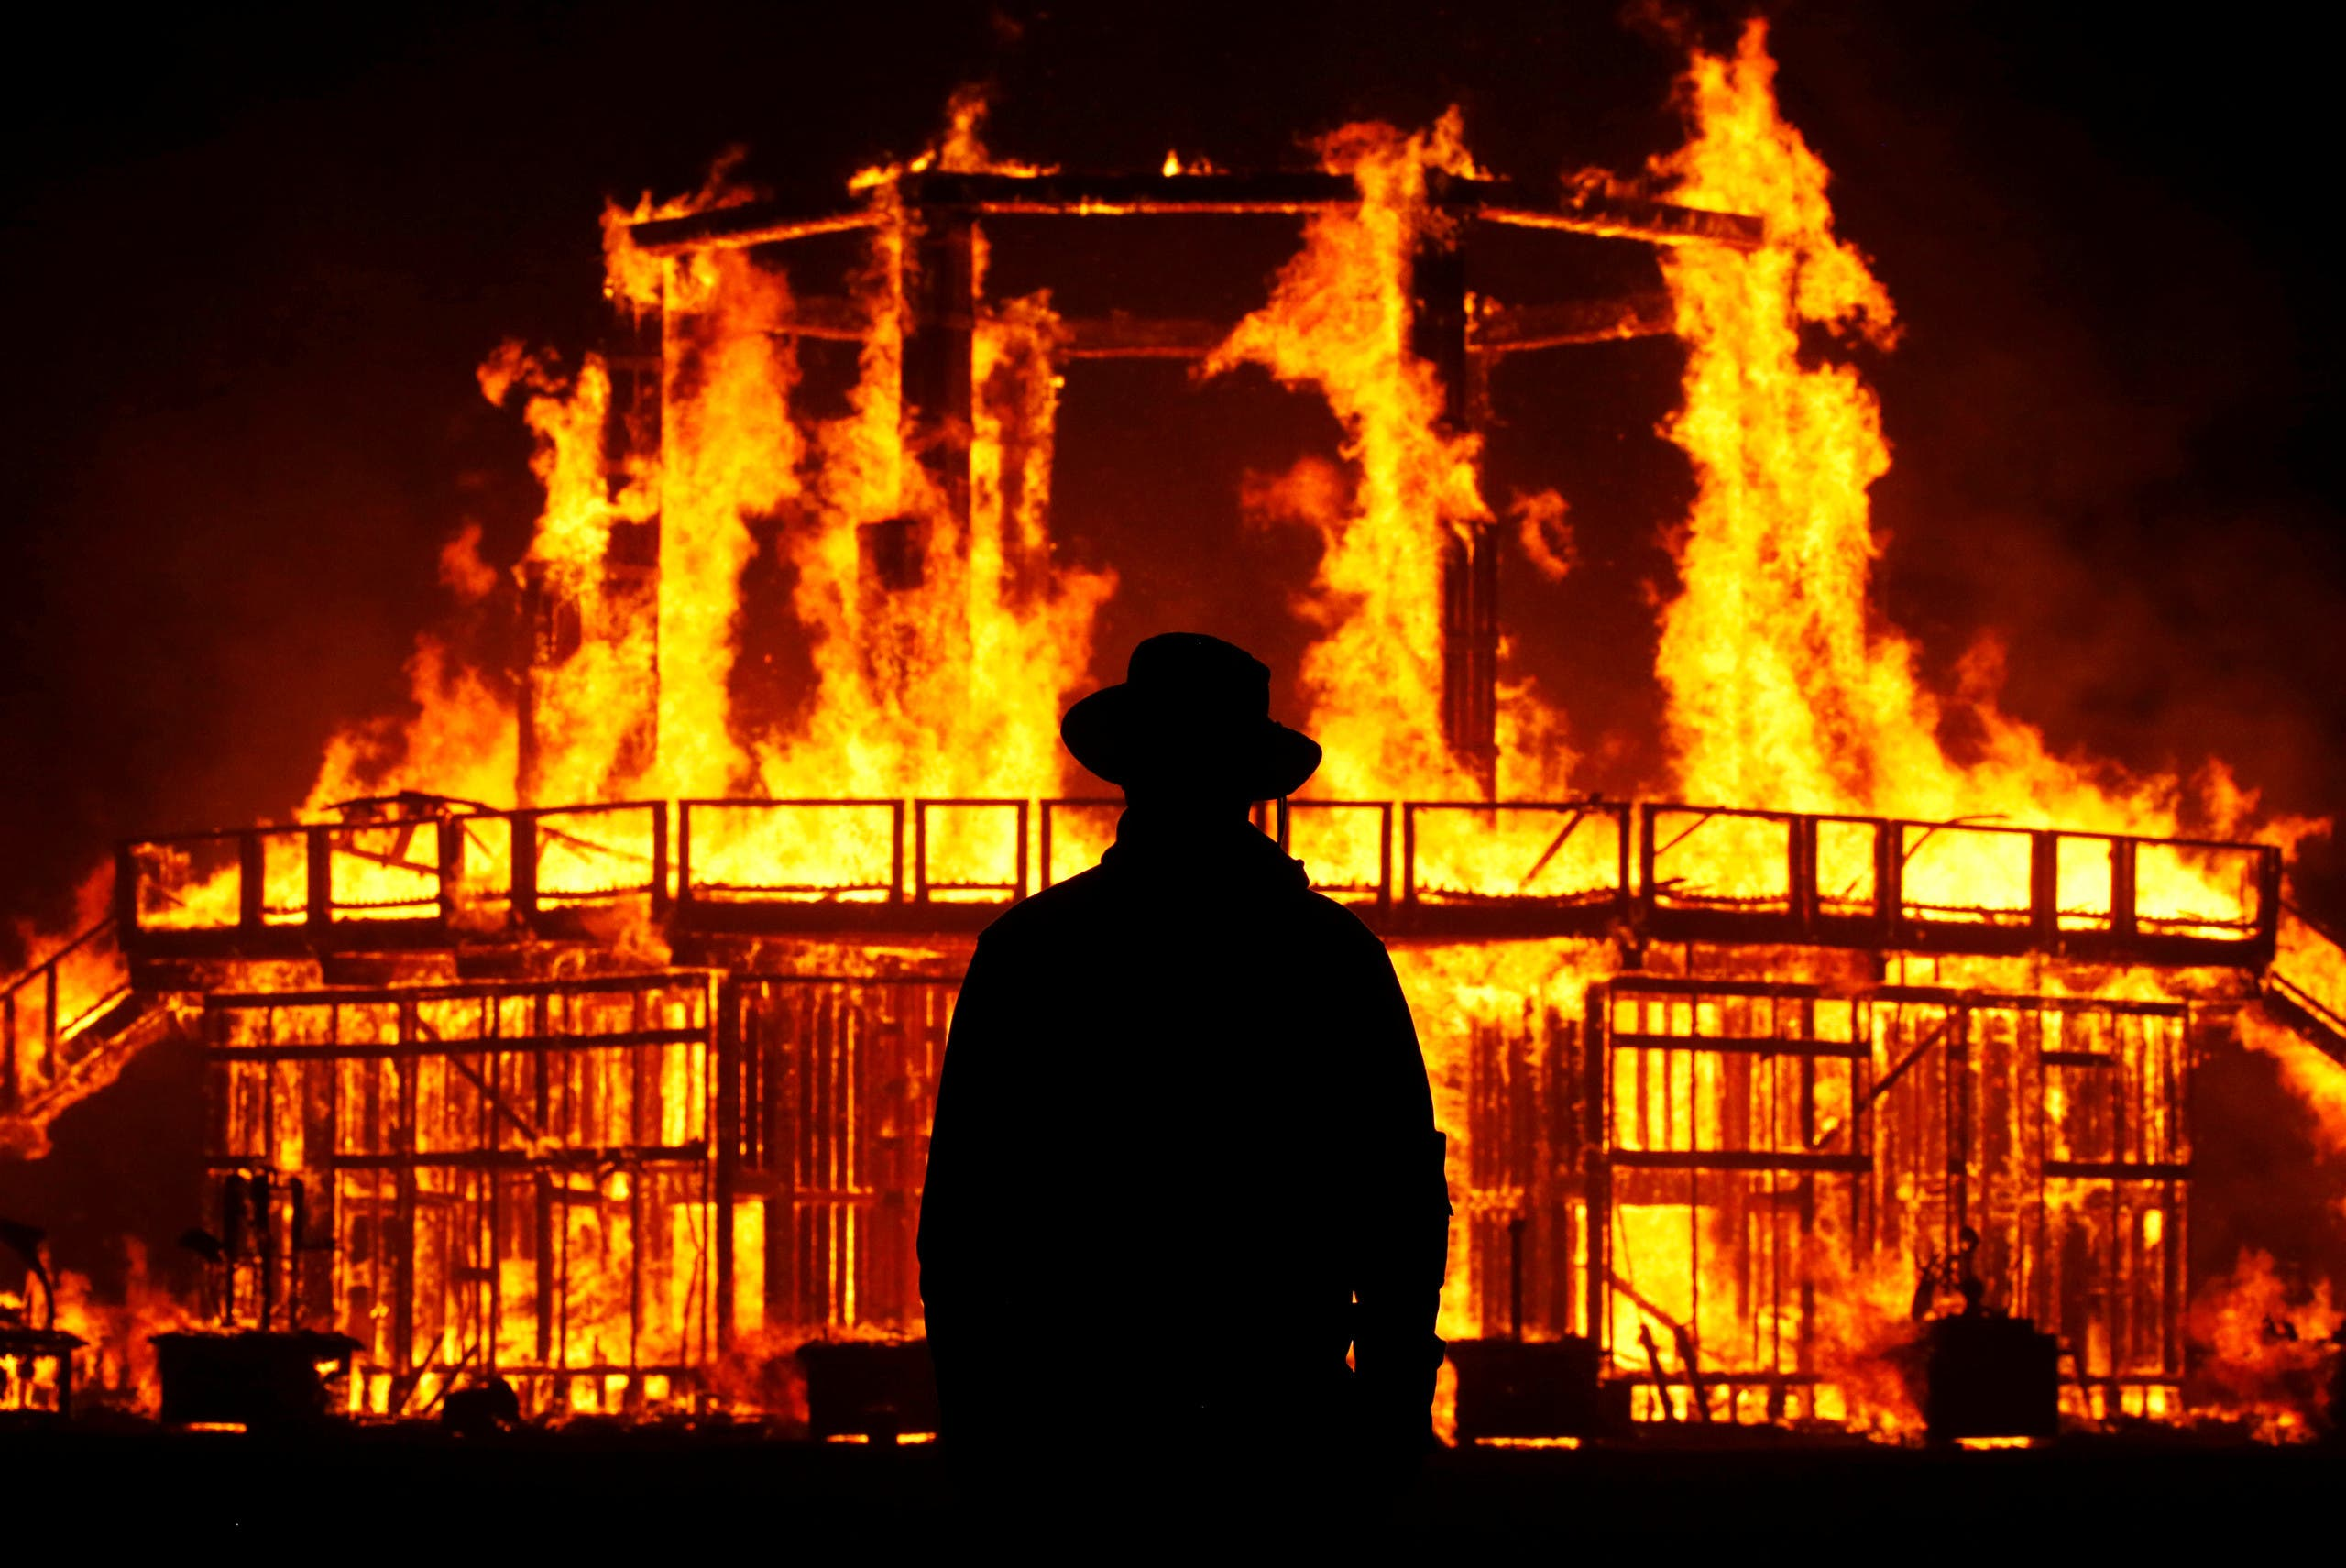 A Burning Man Ranger guards the inner perimeter around the effigy of The Man as it burns at the culmination of the annual Burning Man arts and music festival in the Black Rock desert of Nevada, US September 2, 2017. (File photo: Reuters)